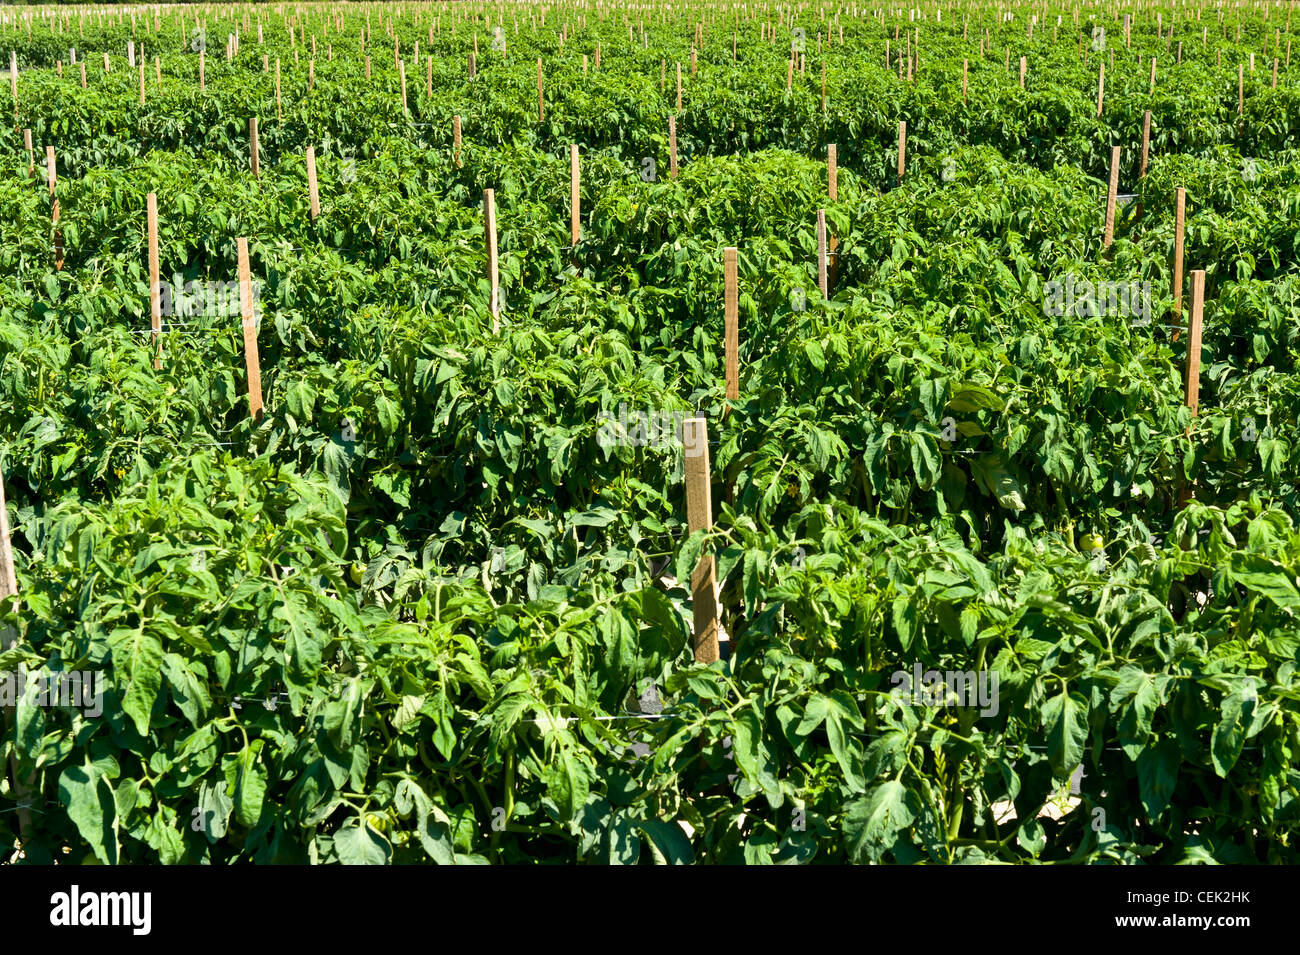 Agriculture - Large field of mulched, irrigated and staked fresh market tomato plants / near Hamburg, Arkansas, - Stock Image